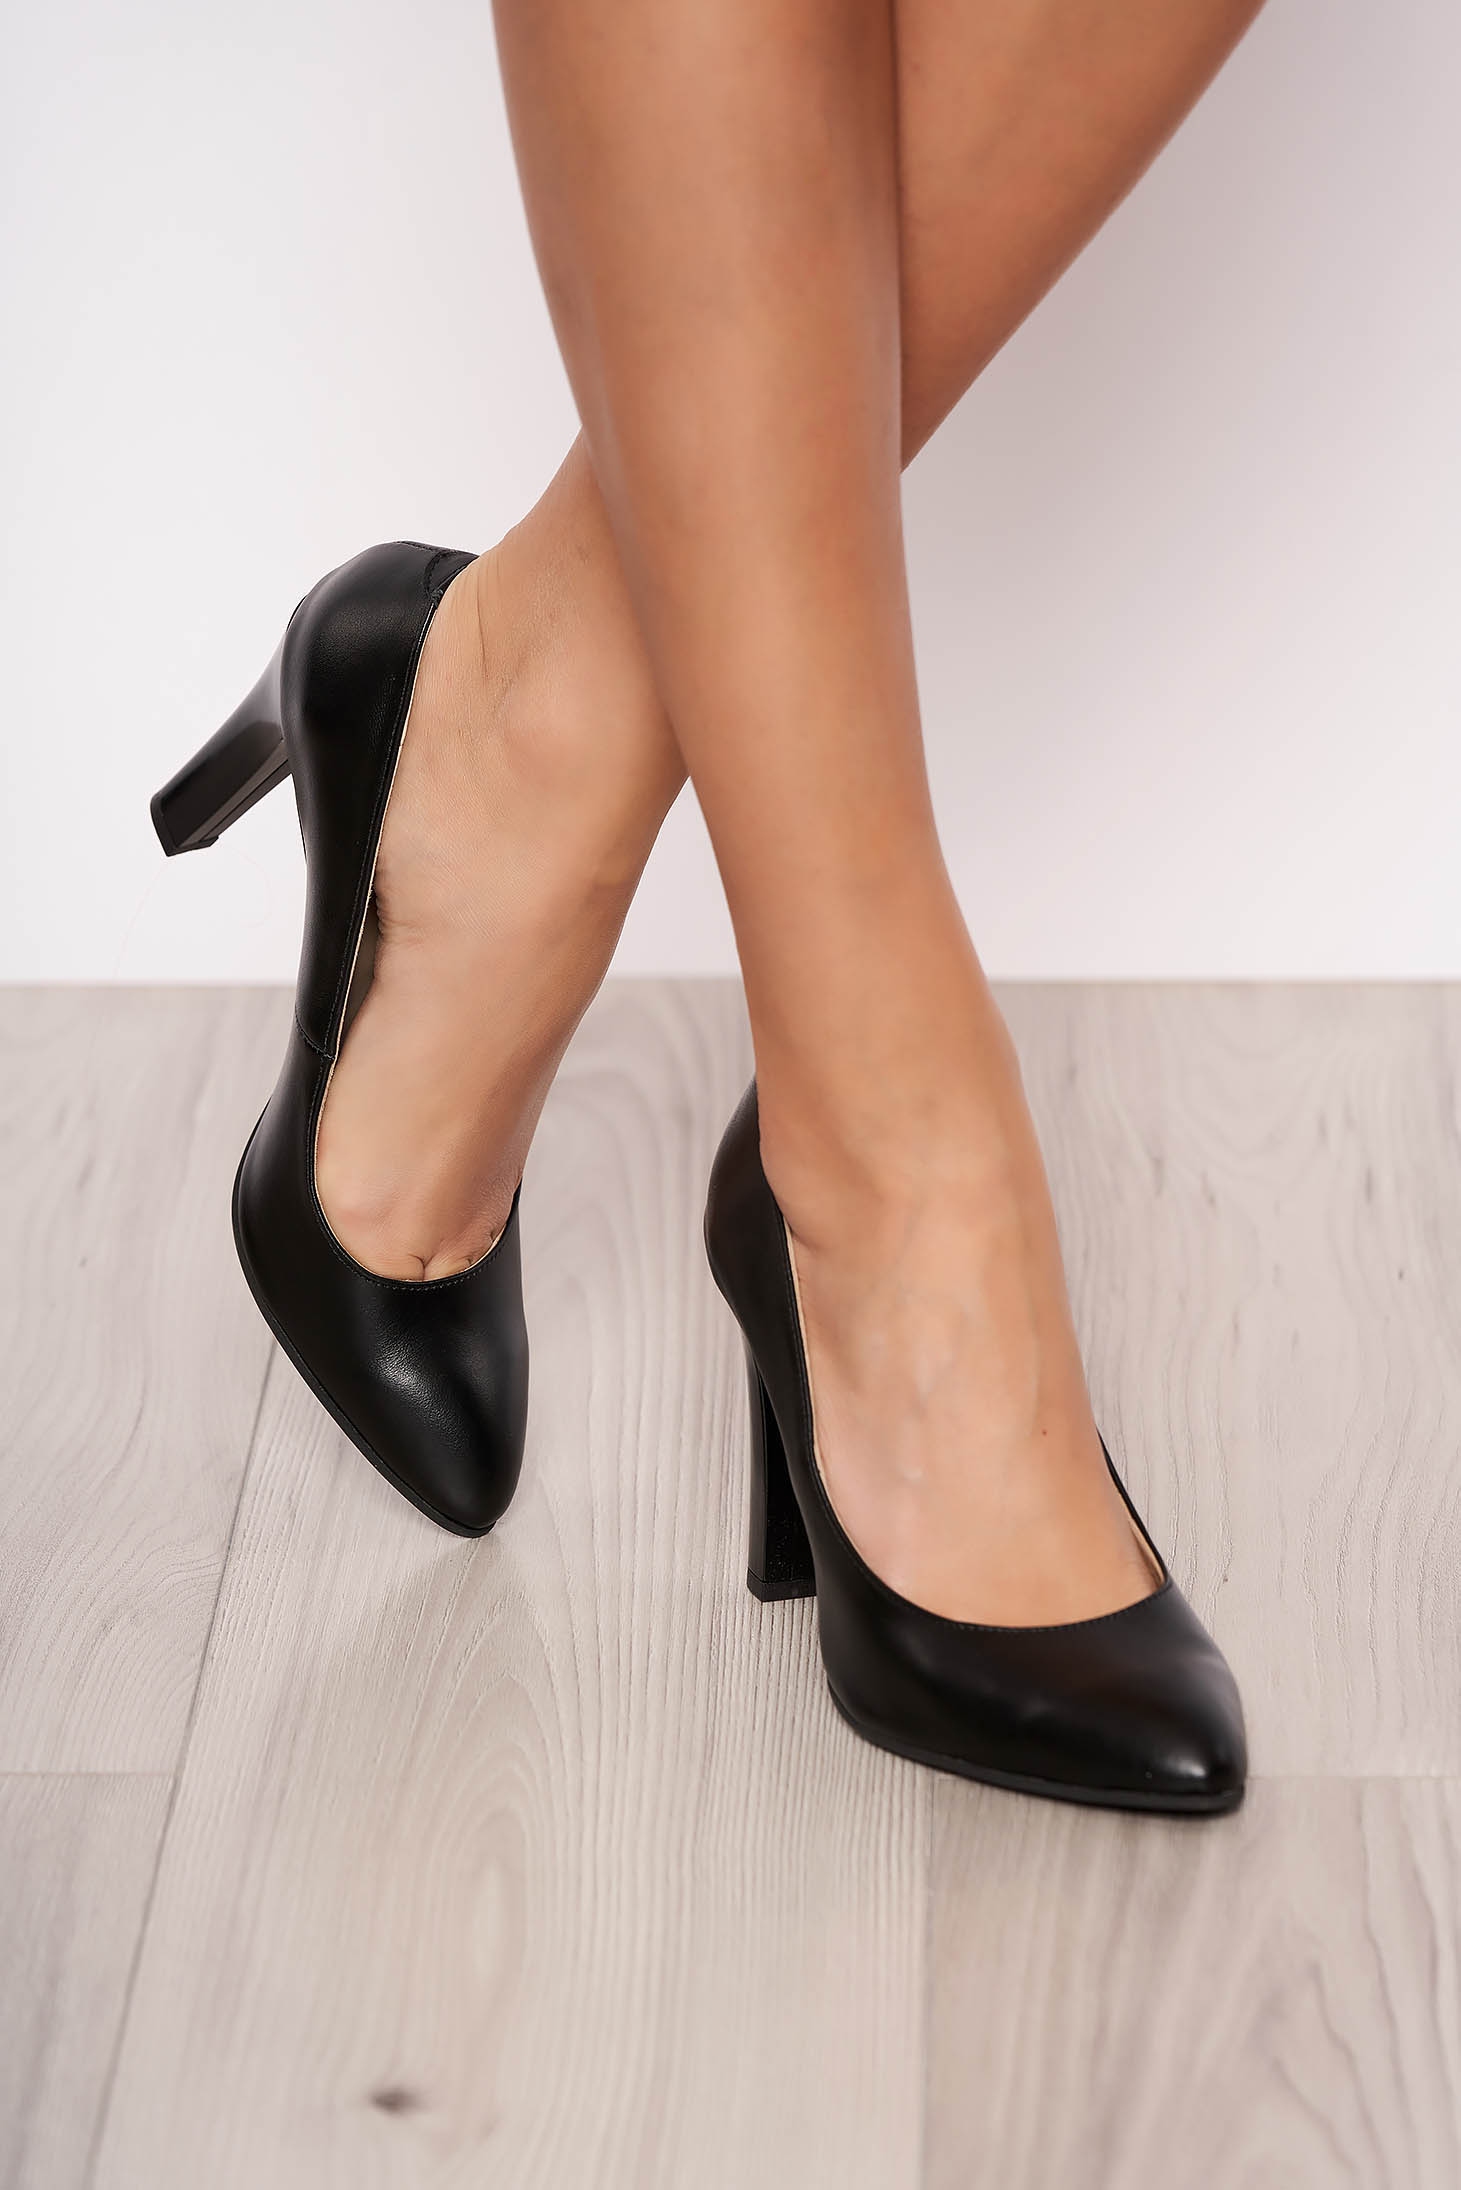 Black elegant shoes natural leather with high heels slightly pointed toe tip